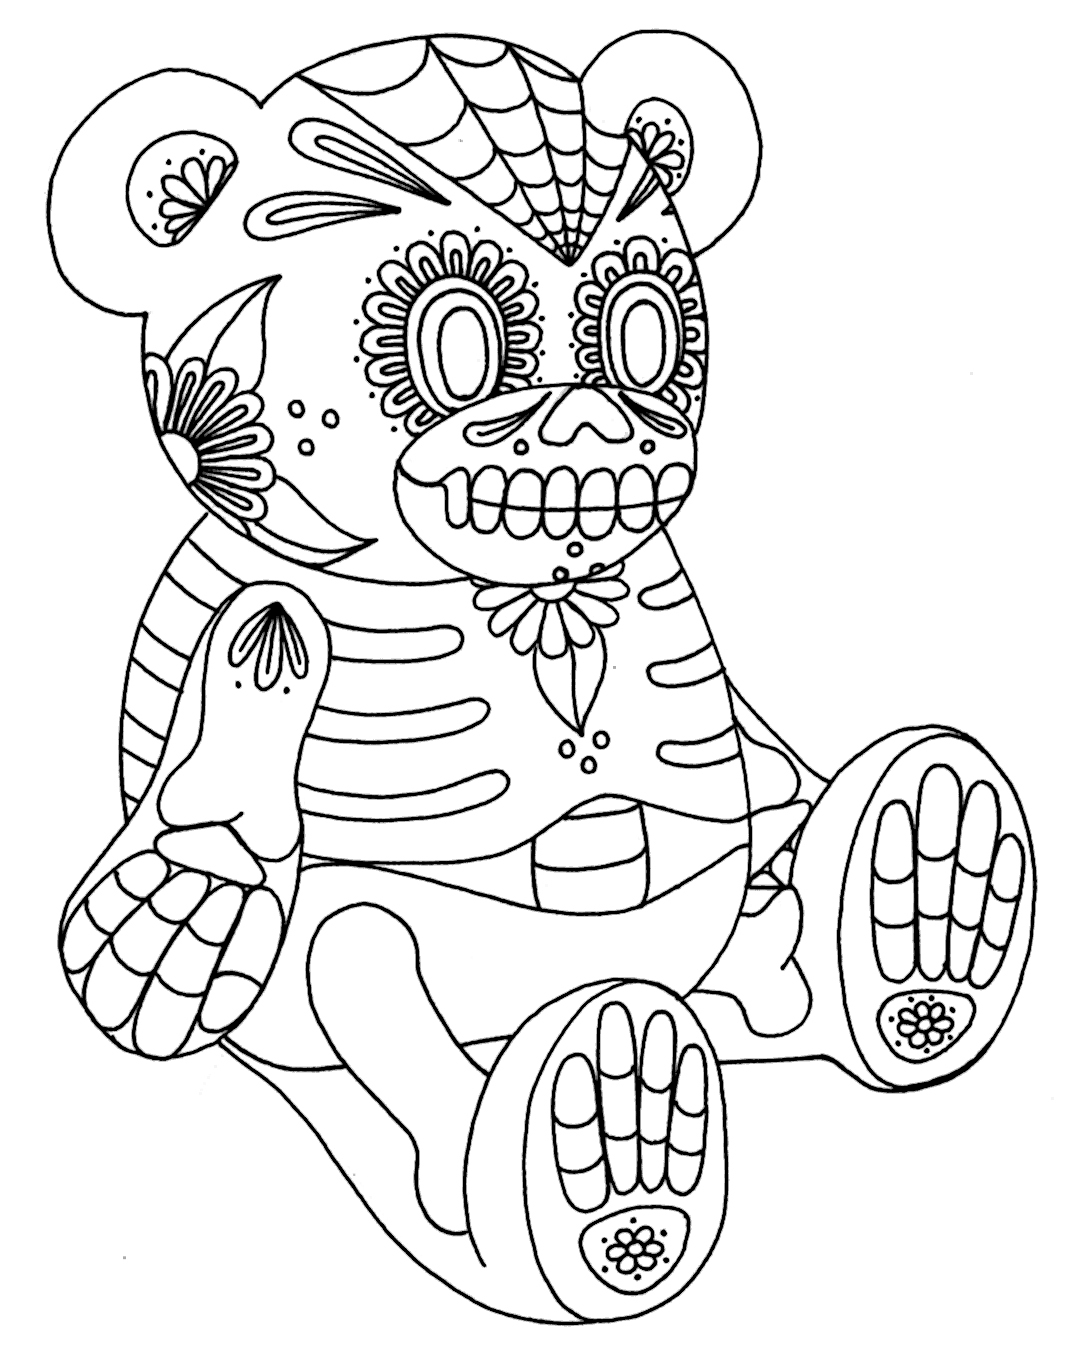 Detailed Skull Coloring Pages For Adults Coloring Pages Coloring Pages Of Skulls